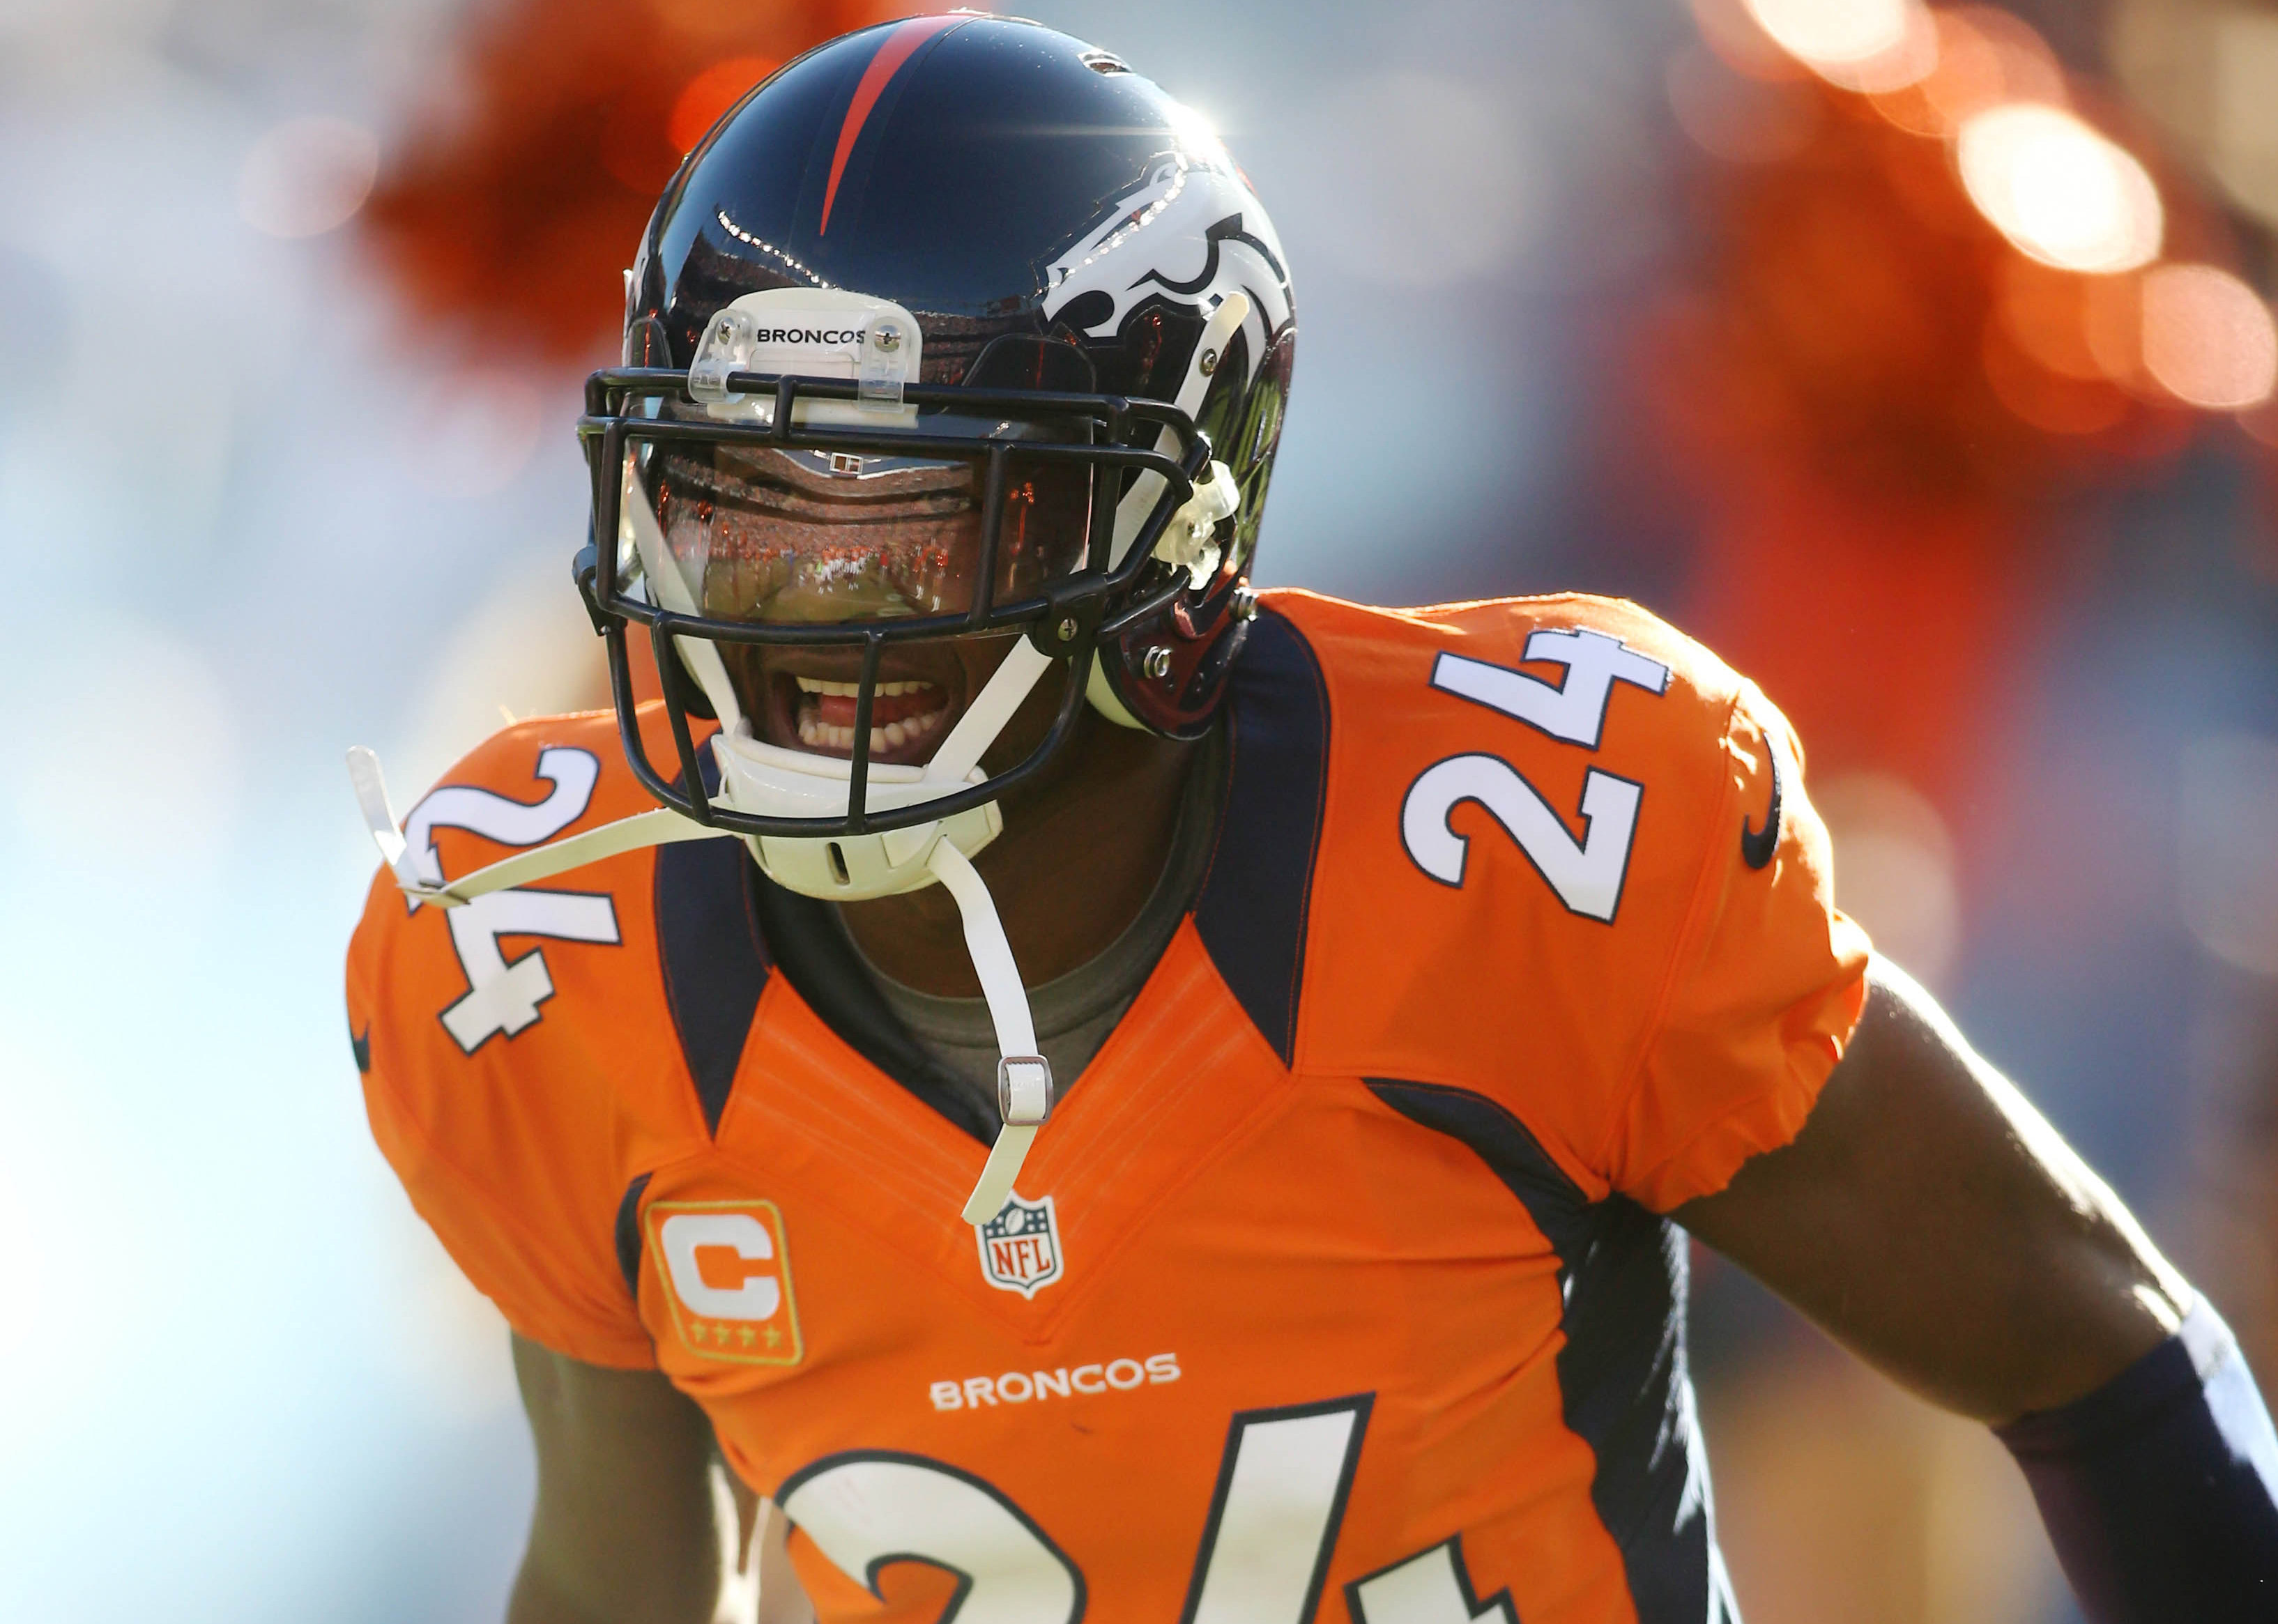 December 2, 2012; Denver, CO, USA; Denver Broncos cornerback Champ Bailey (24) entering the field before the first half against the Tampa Bay Buccaneers at Sports Authority Field at Mile High. The Broncos won 31-23. Mandatory Credit: Chris Humphreys-USA TODAY Sports